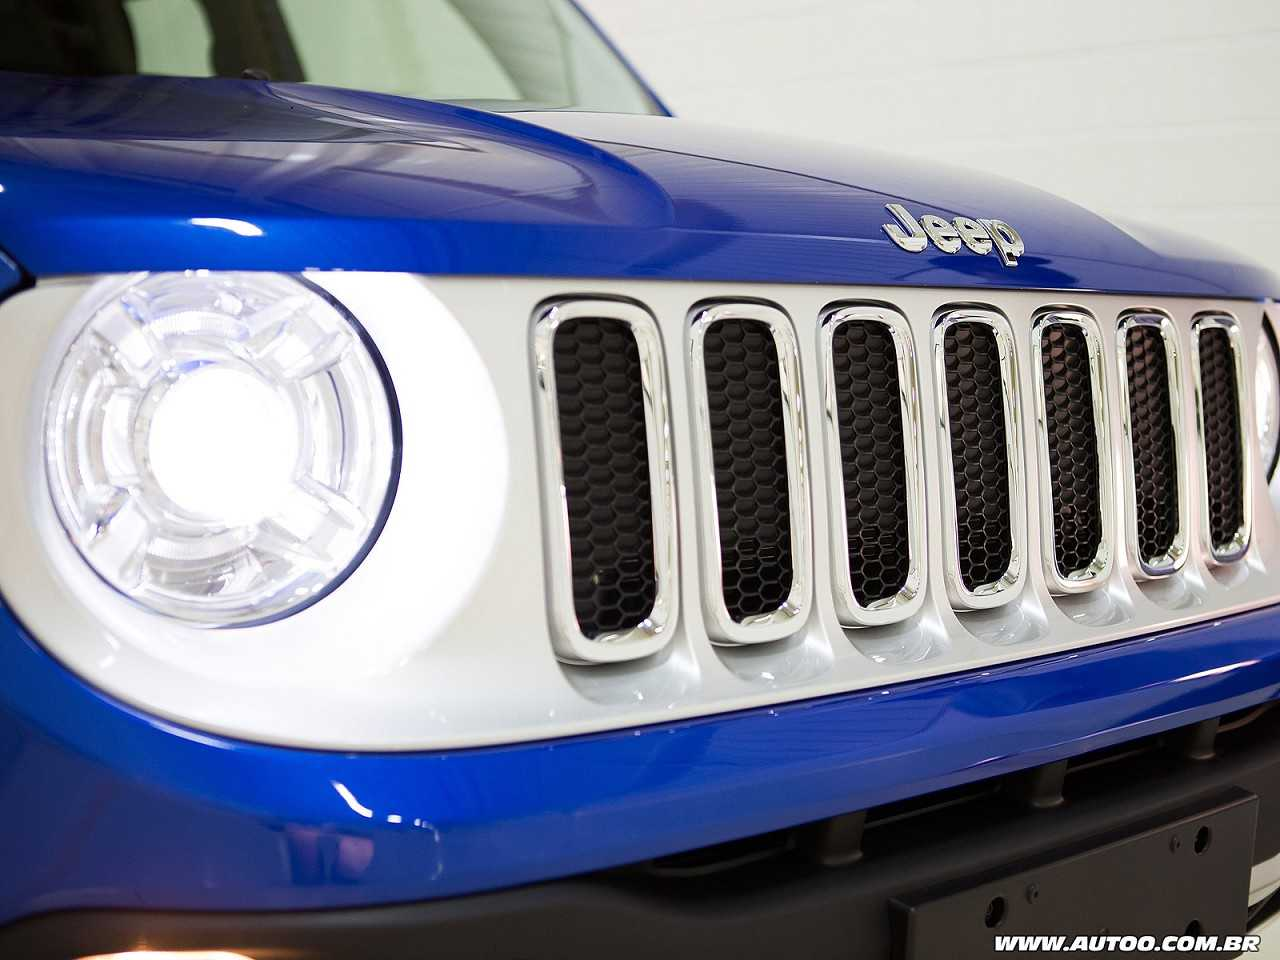 Jeep Renegade 2018 - grade frontal